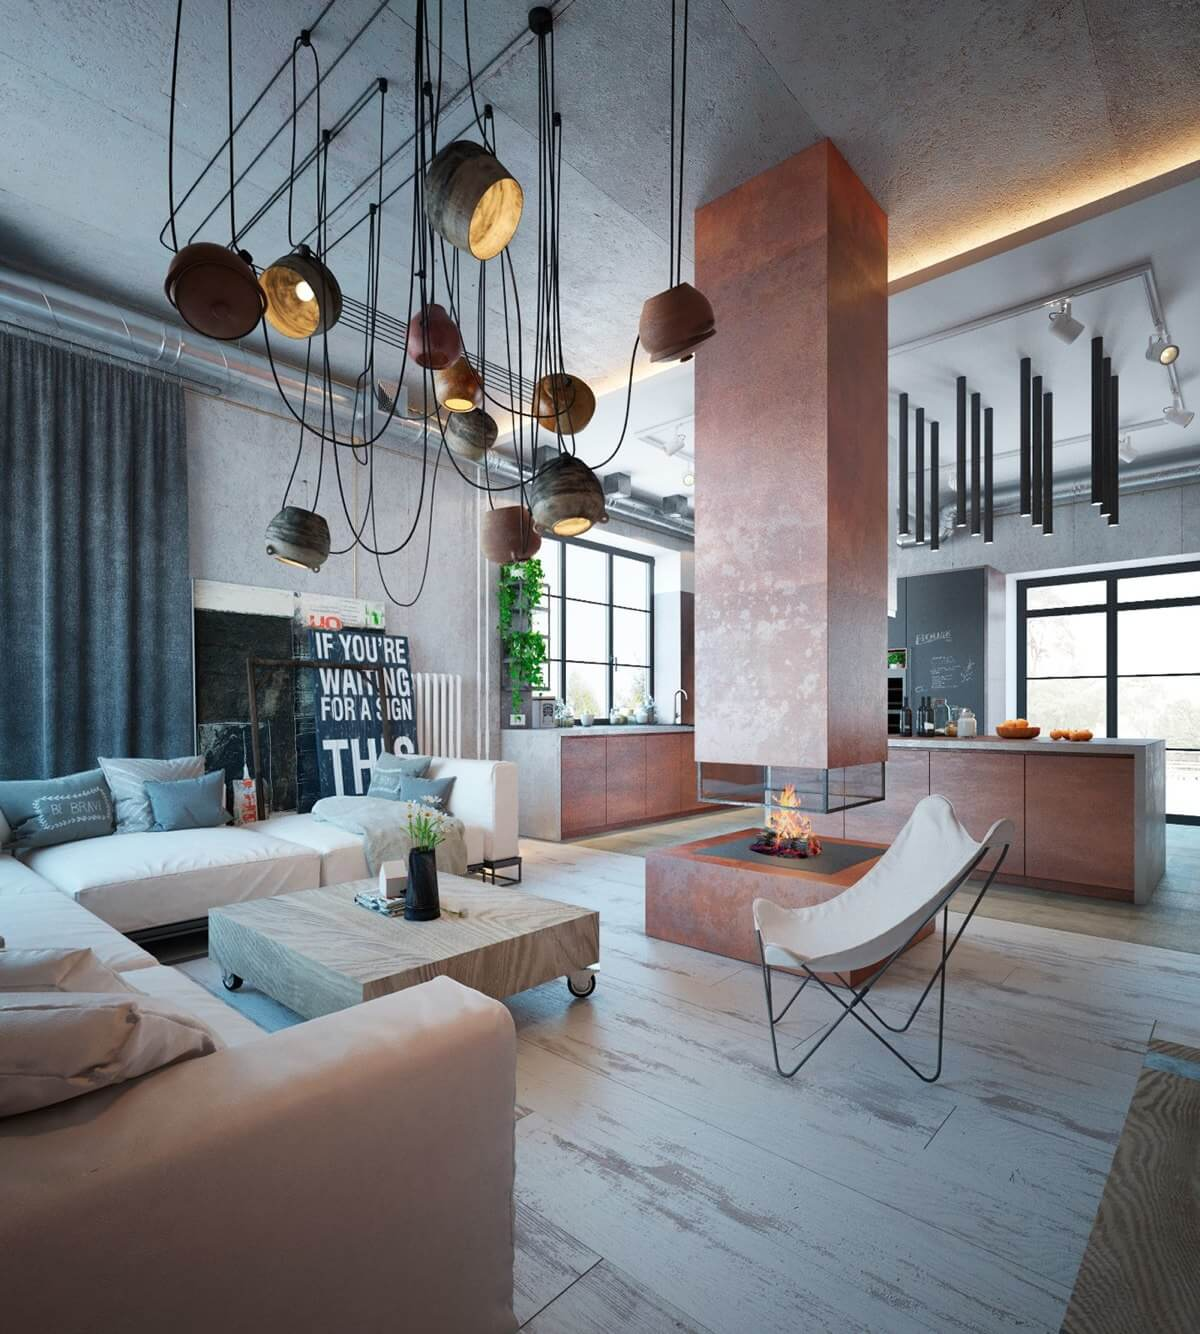 Industrial Home Design Spectacular Modern Industrial Home: 36 Best Industrial Home Decor Ideas And Designs For 2019